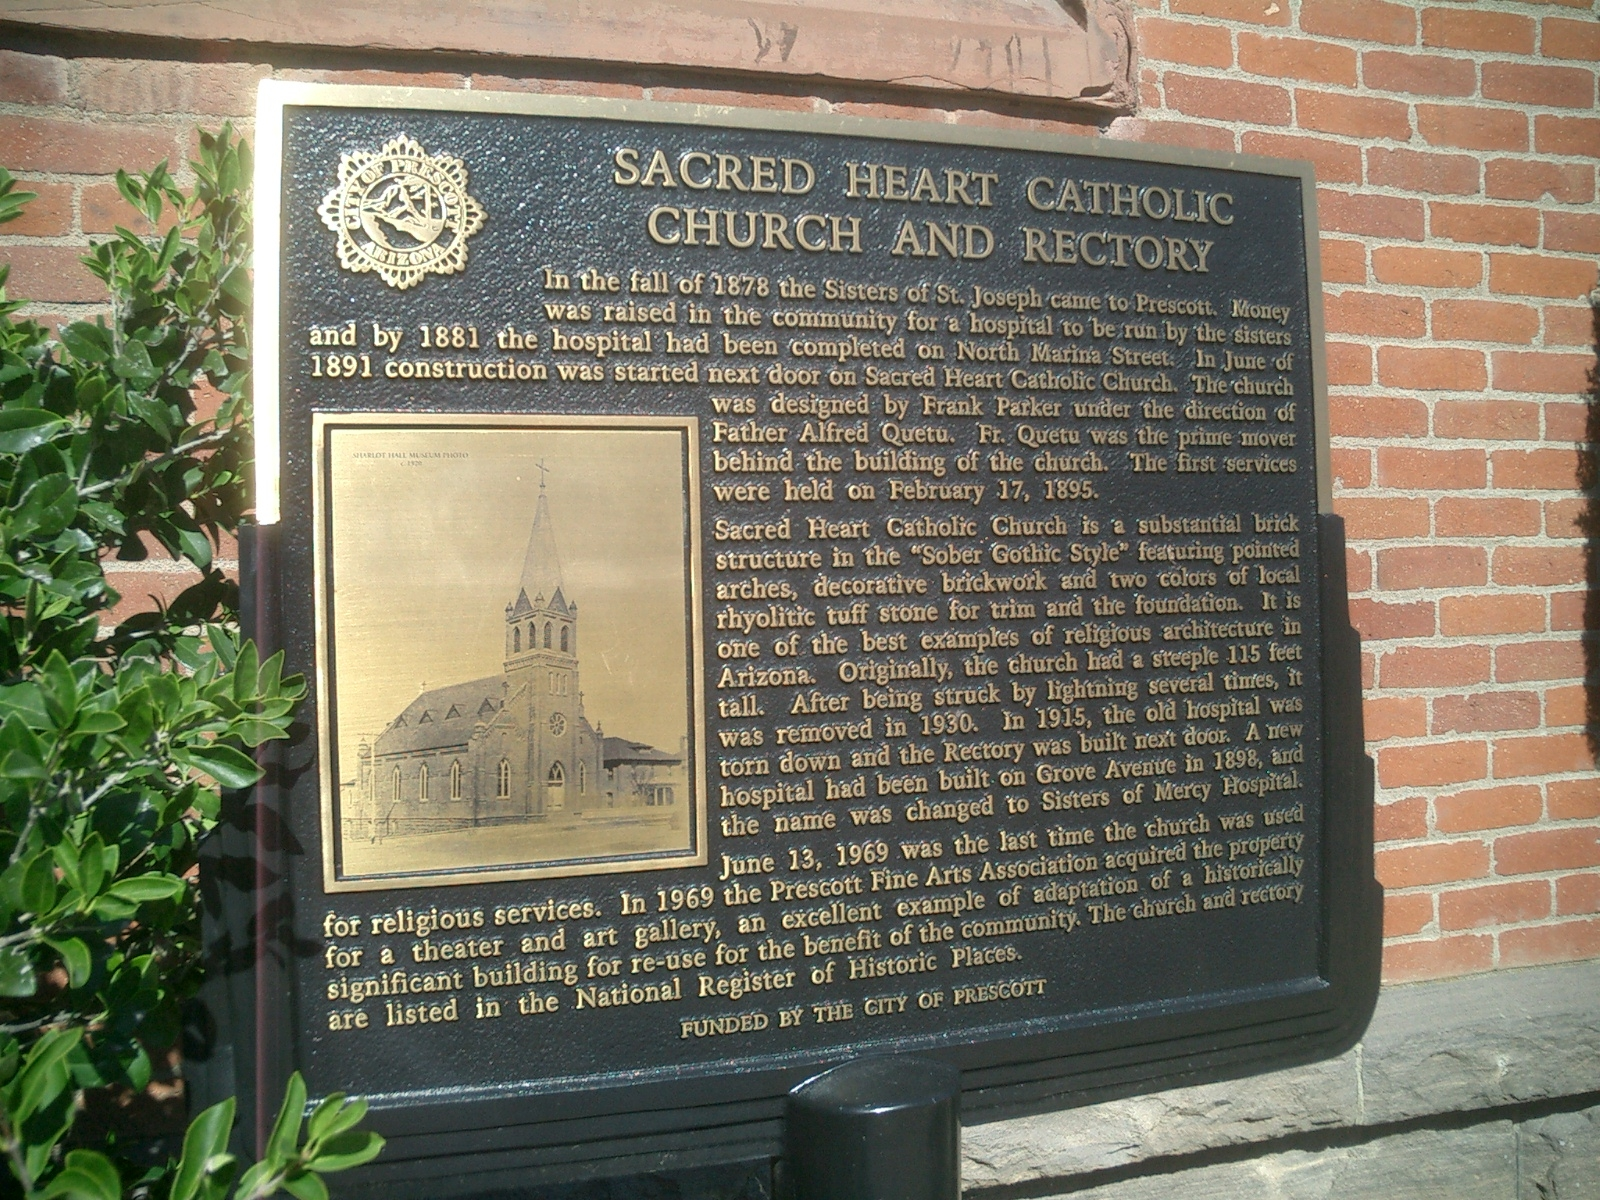 Sacred Heart Catholic Church and Rectory Marker